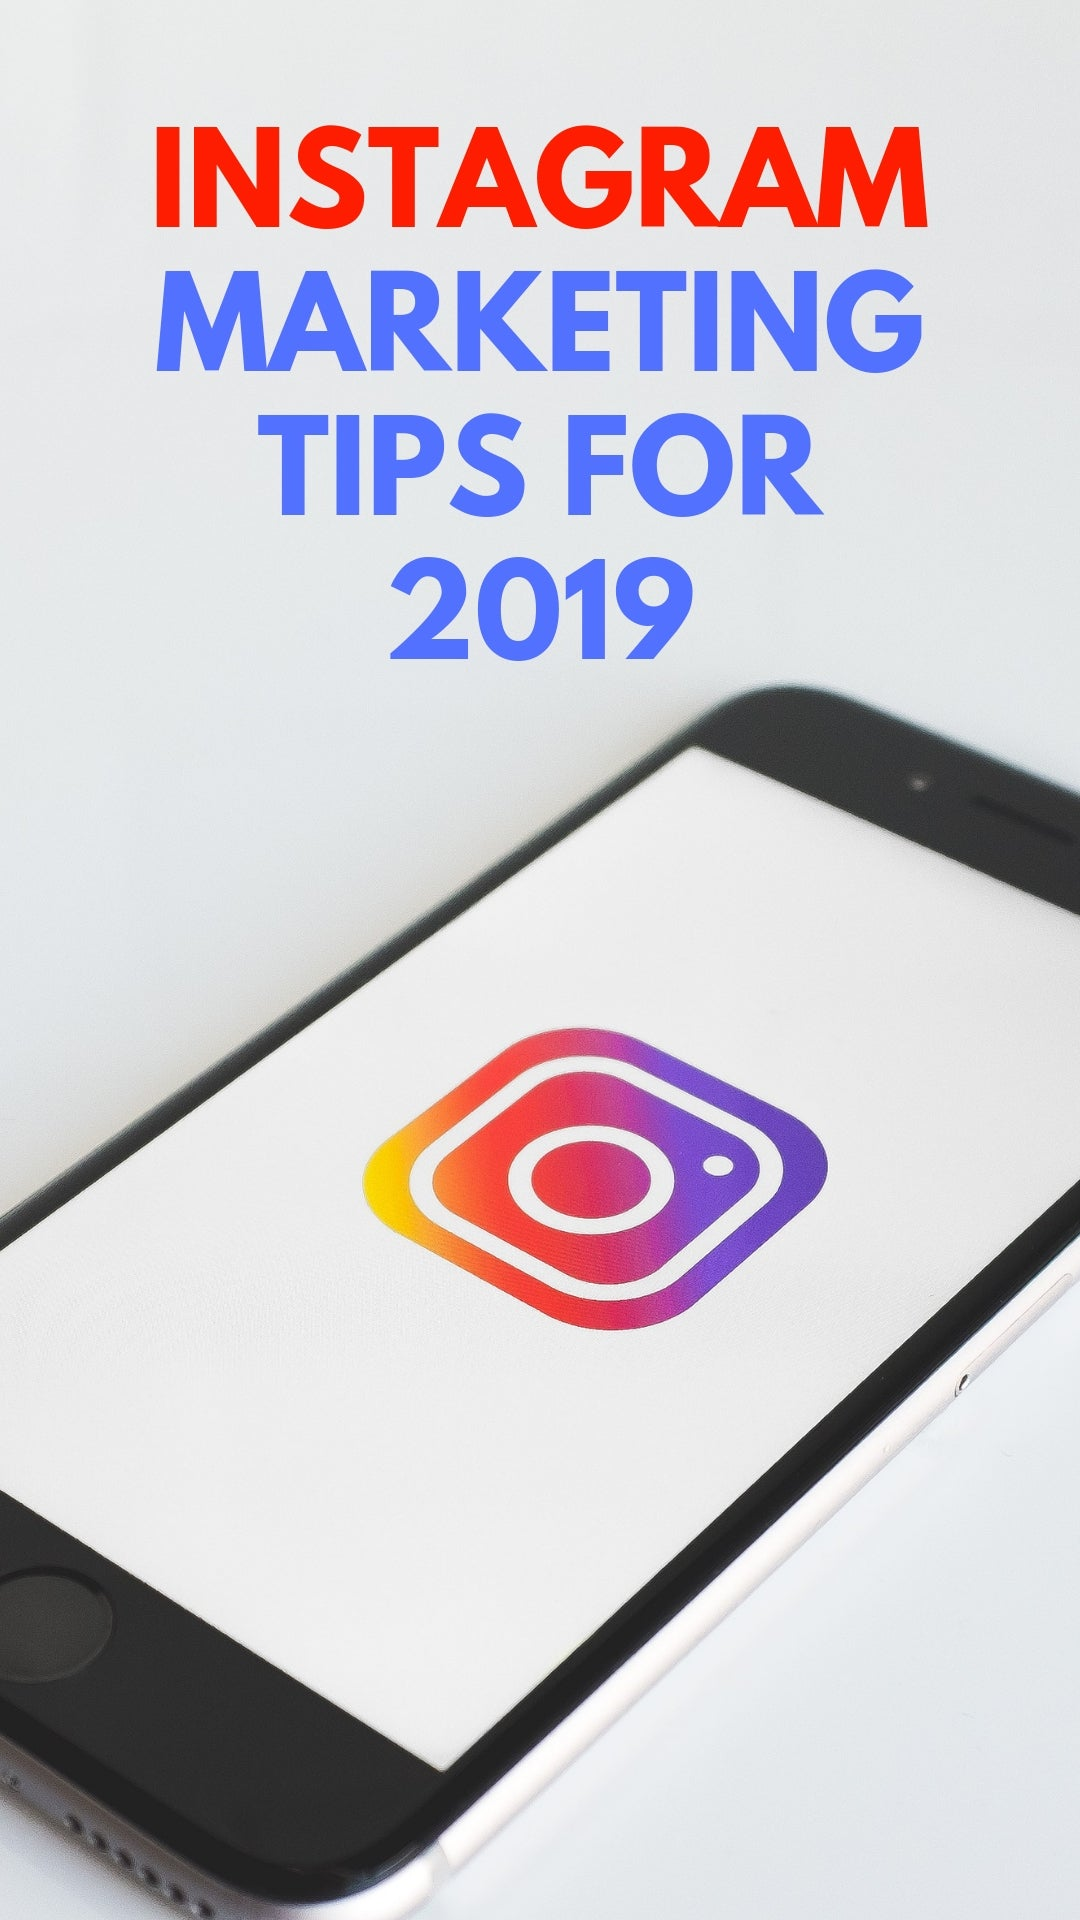 INSTAGRAM MARKETING TIPS FOR 2019 #instagram #marketing #socialmedia